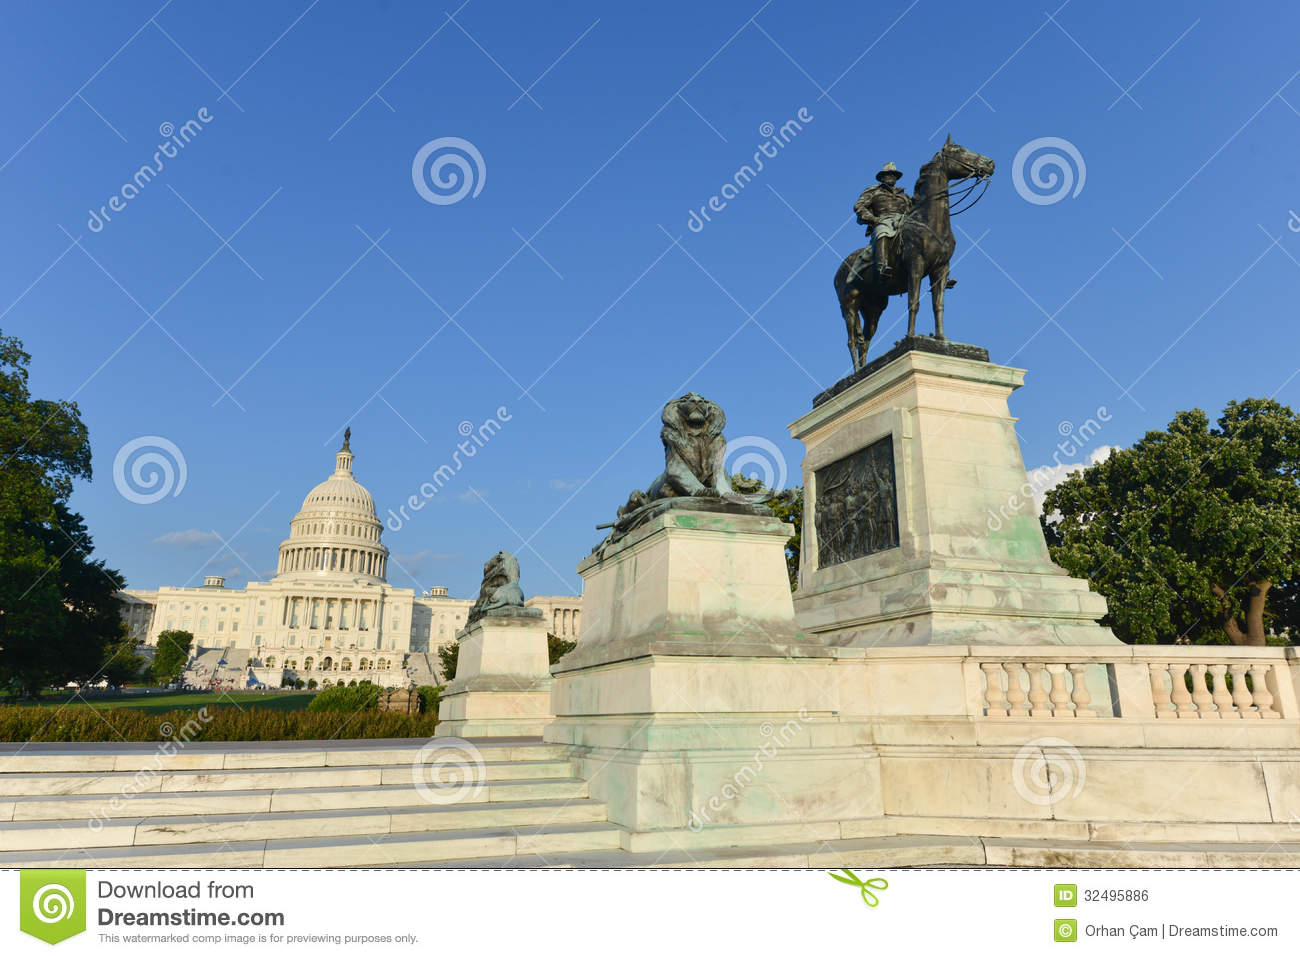 Royalty free stock image ulysses s grant cavalry memorial in front